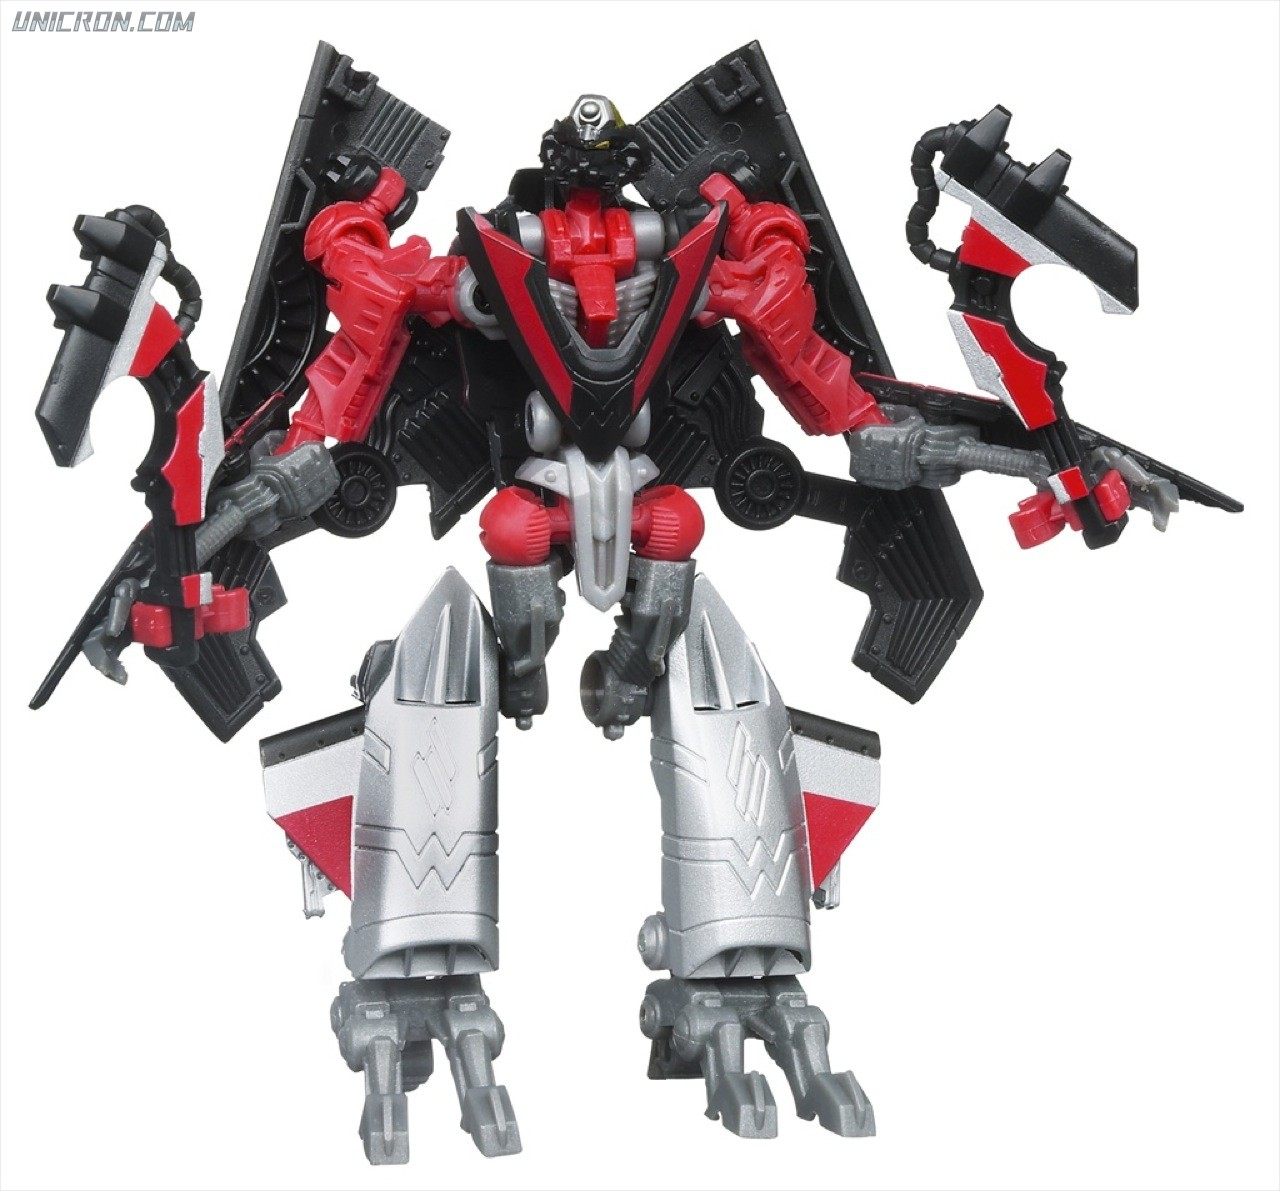 Transformers Generations Laserbeak (GDO China Import) toy